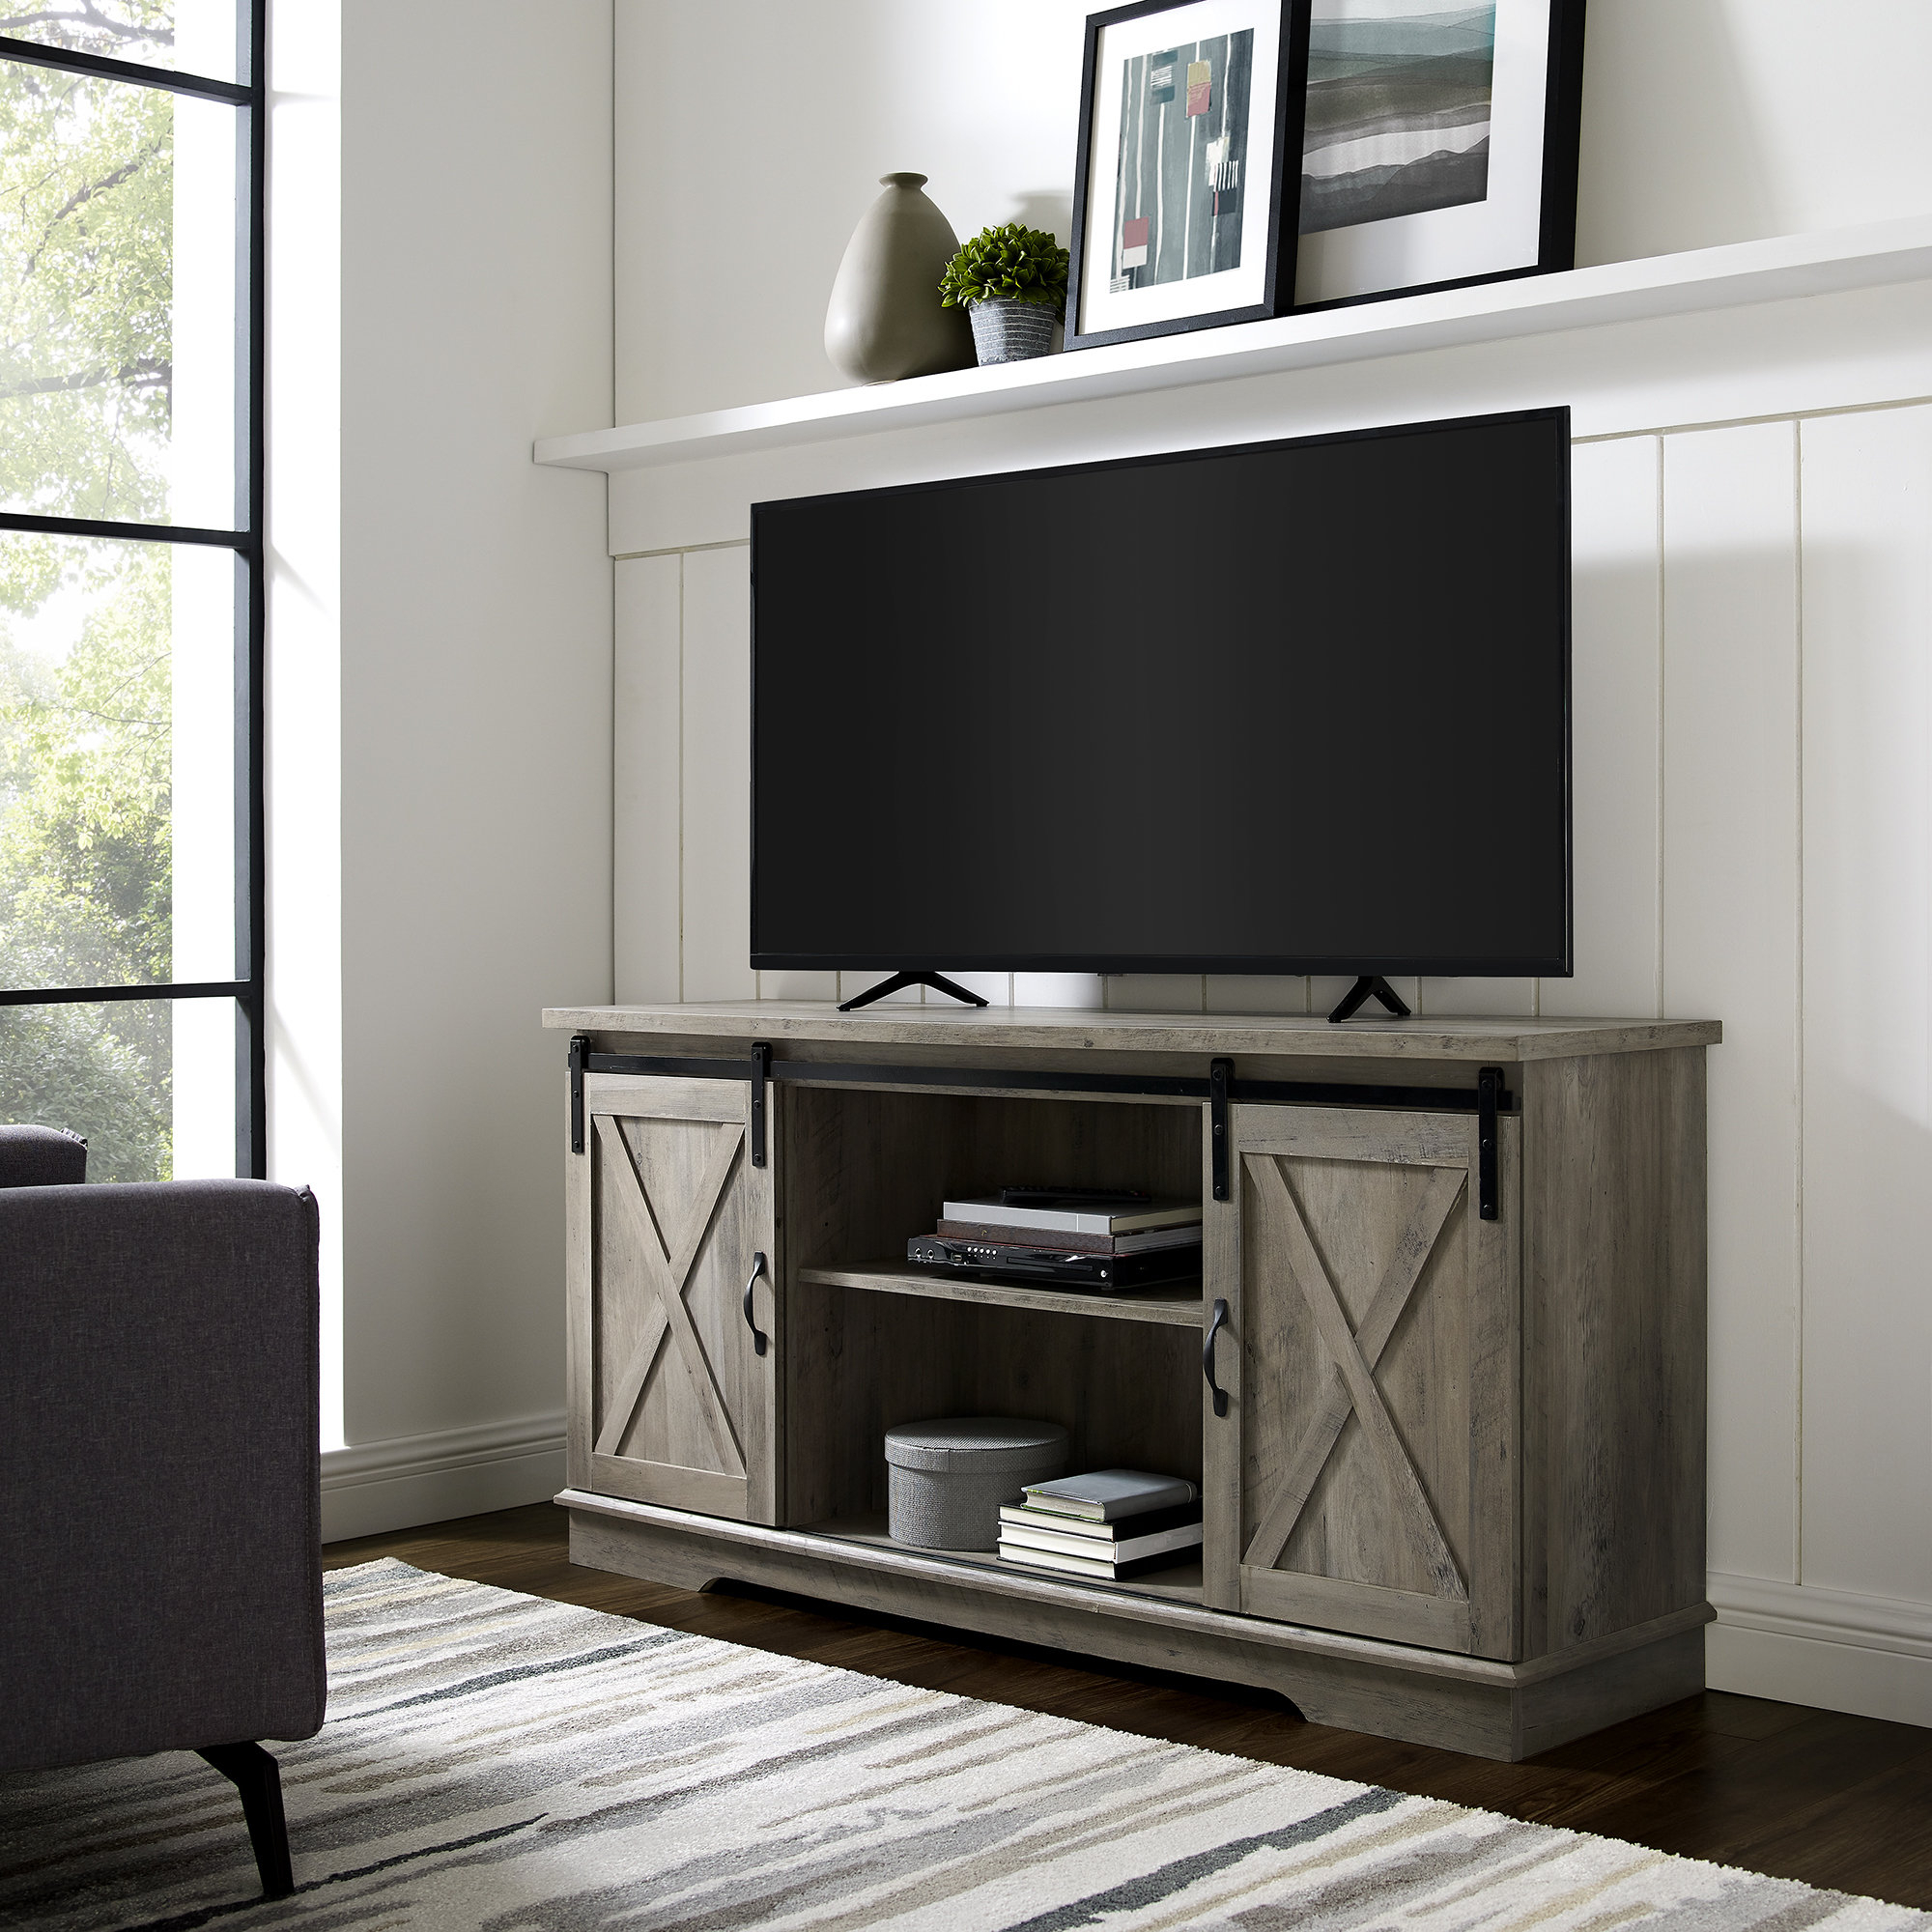 Hidden Tv Cabinet (View 12 of 20)